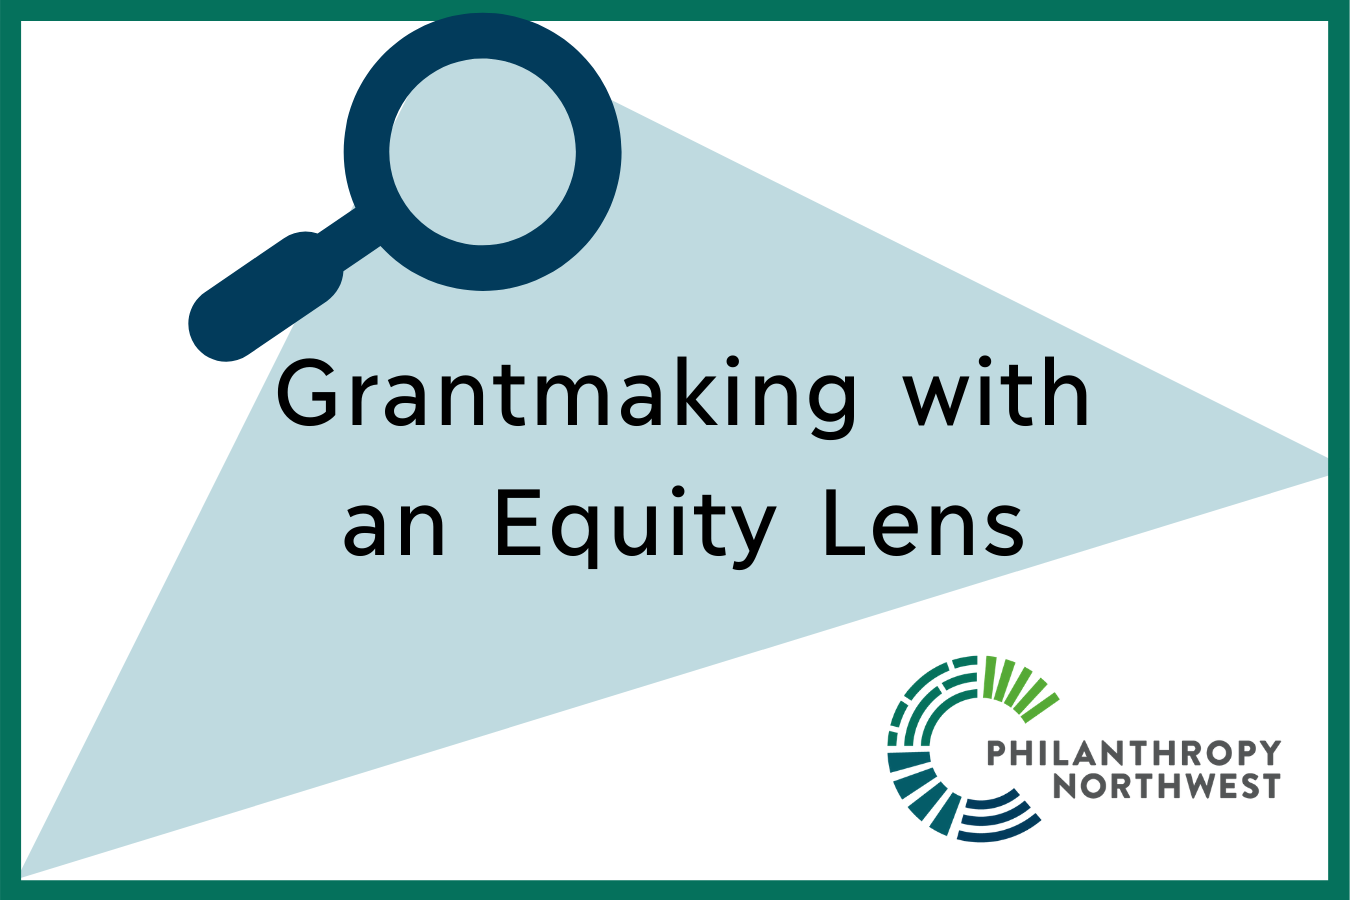 Grantmaking with an Equity Lens graphic with a magnifying glass icon